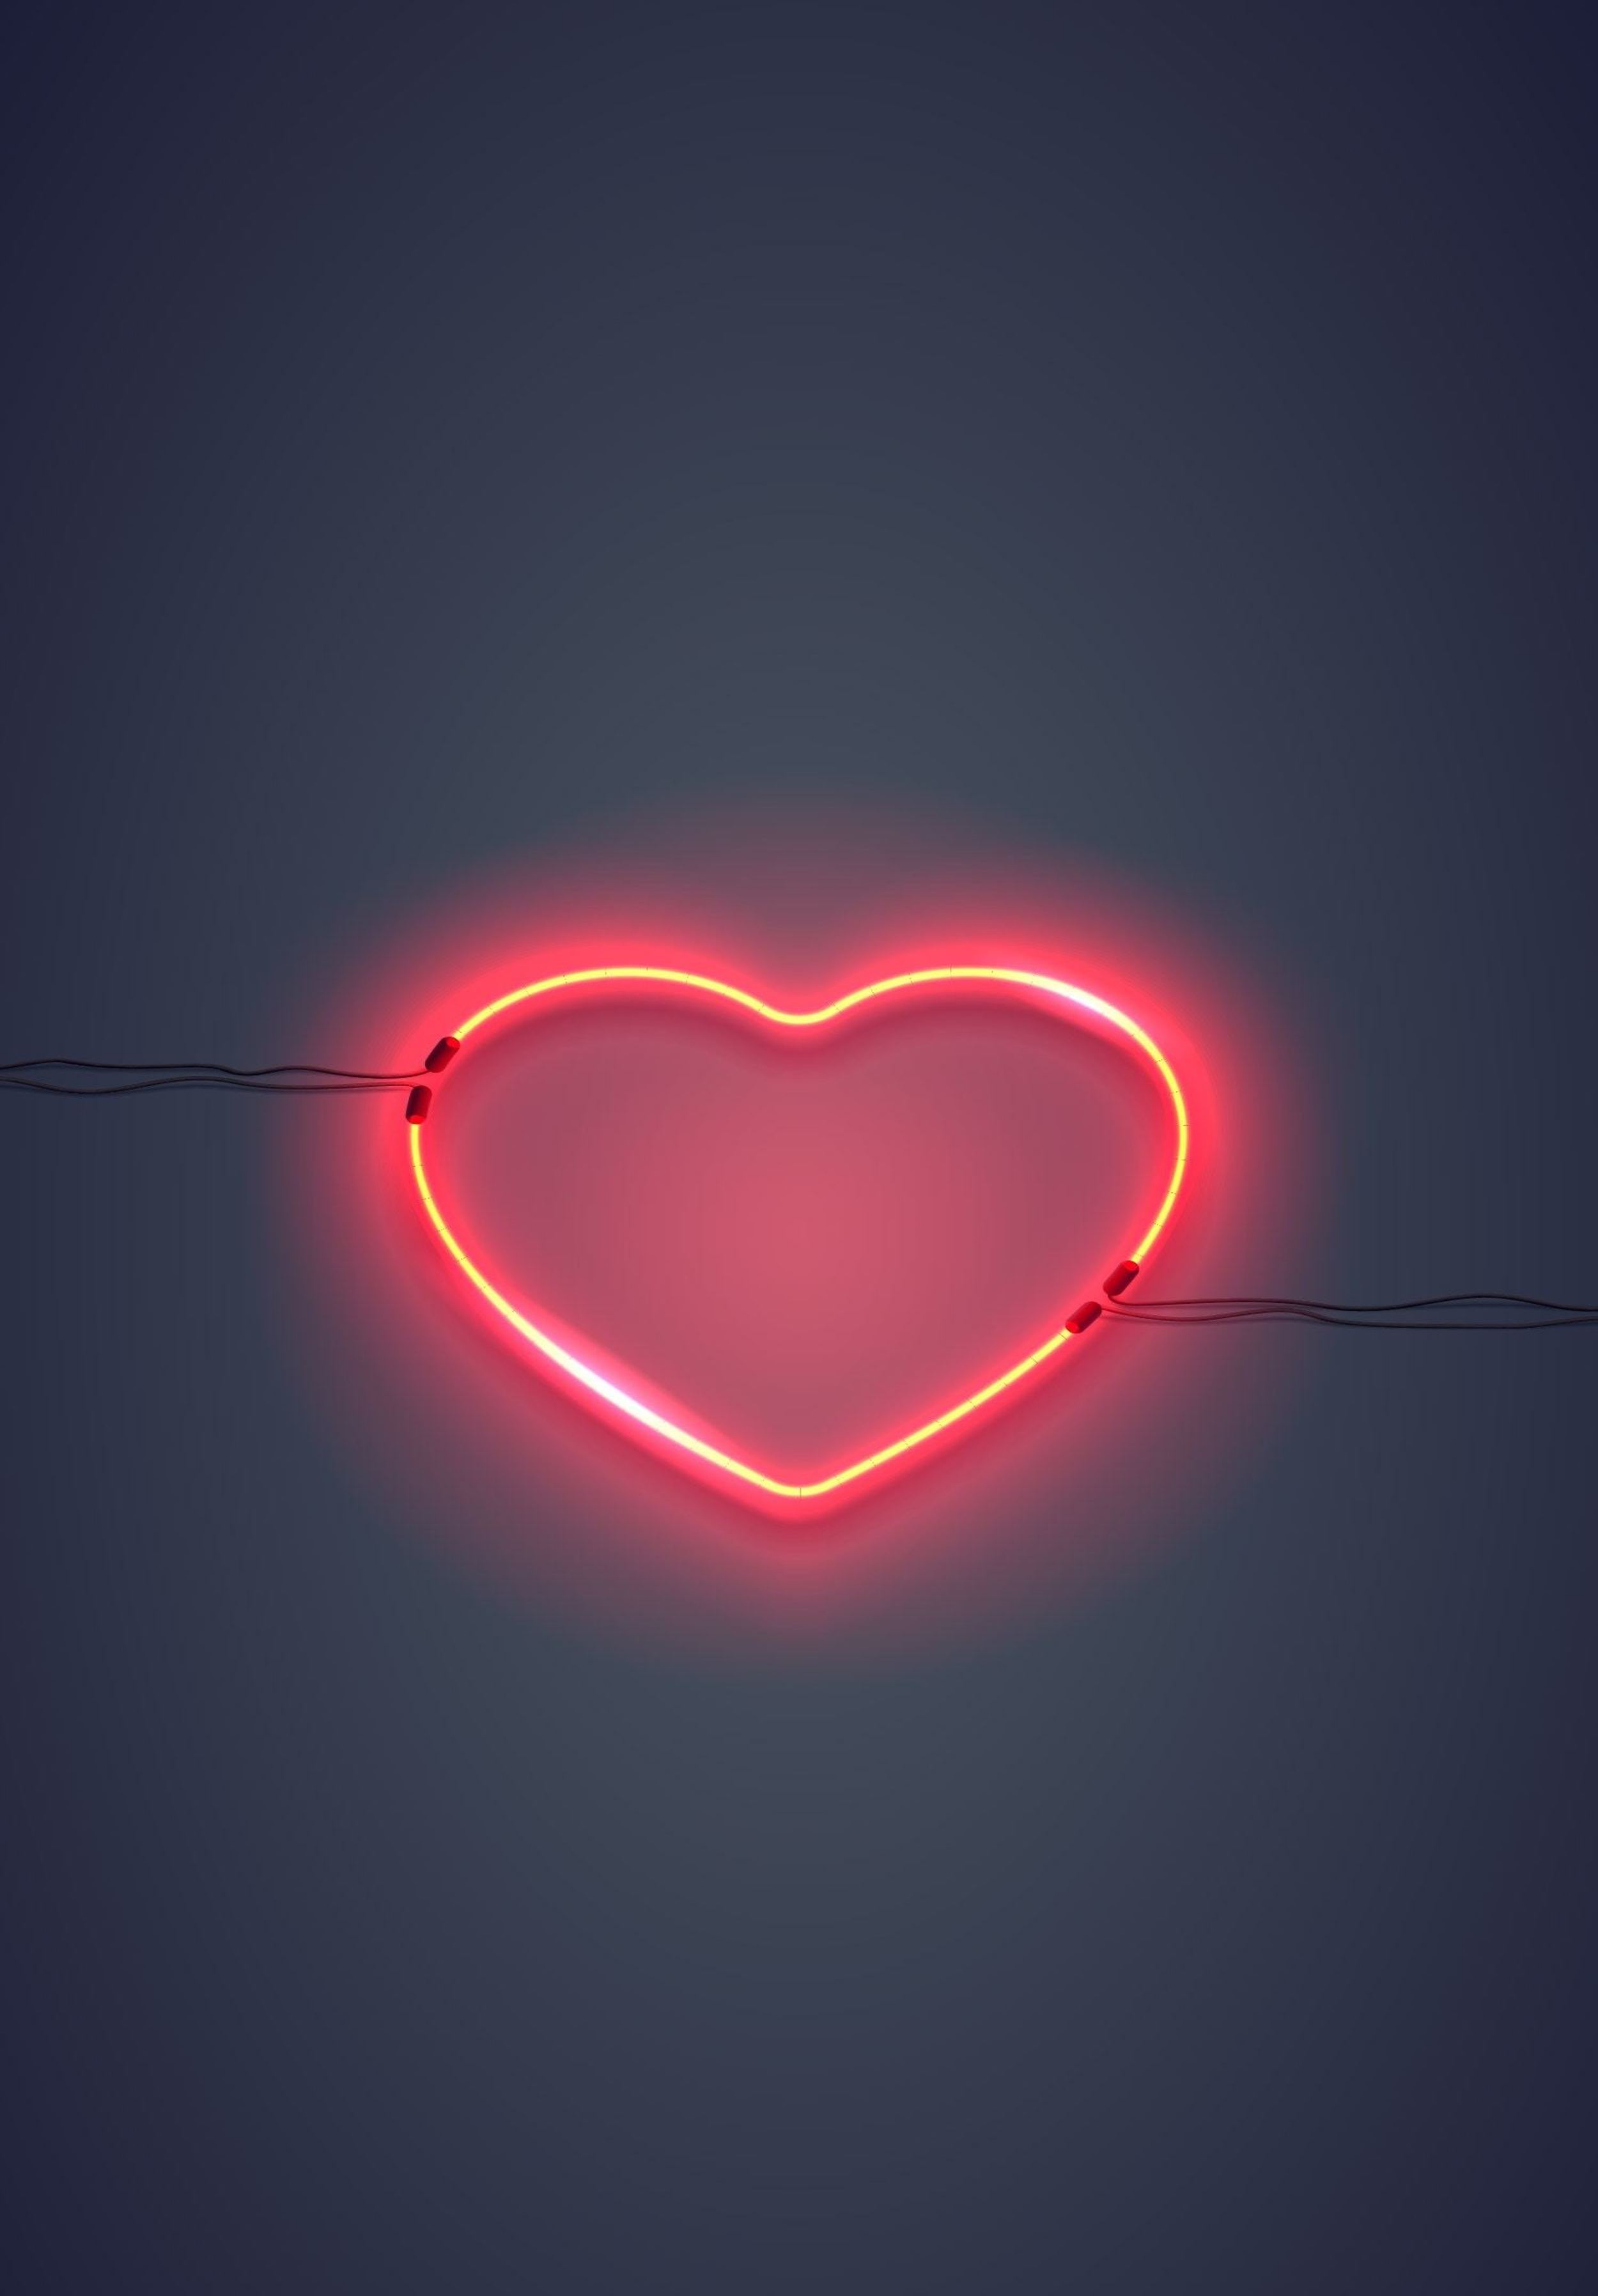 95424 download wallpaper Love, Heart, Backlight, Illumination, Neon screensavers and pictures for free